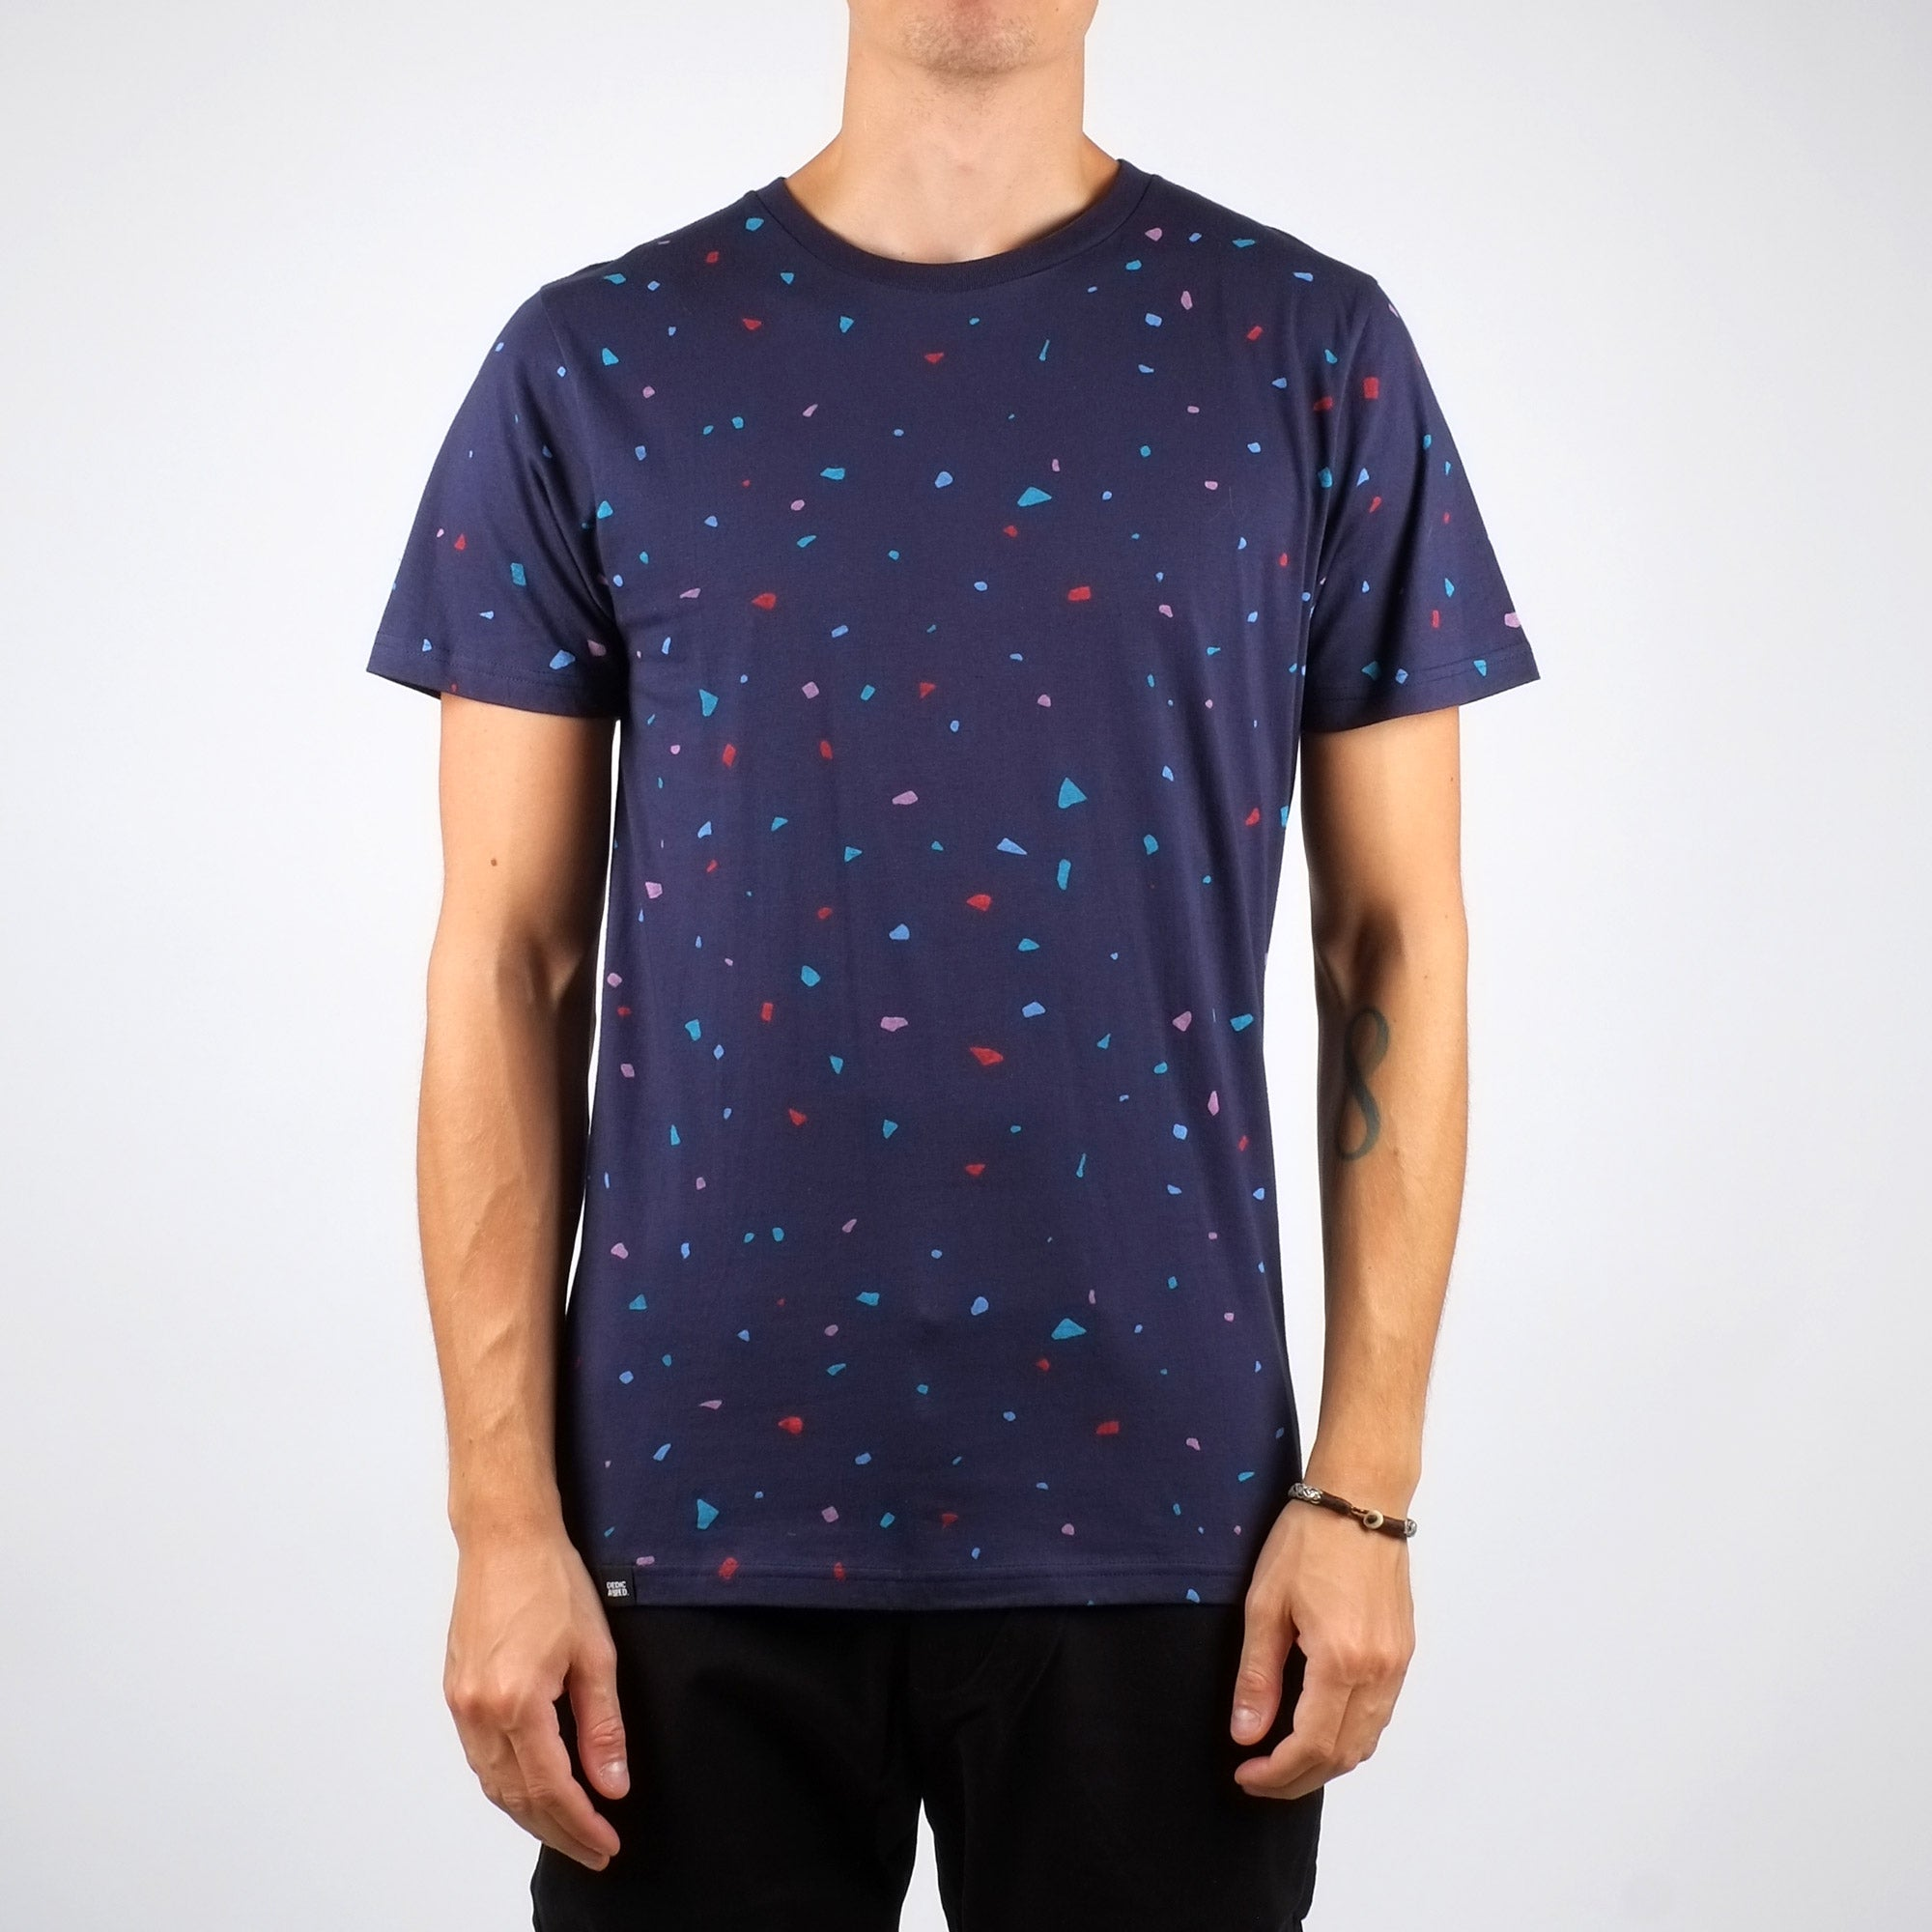 T-shirt confettis en coton bio - Dedicated